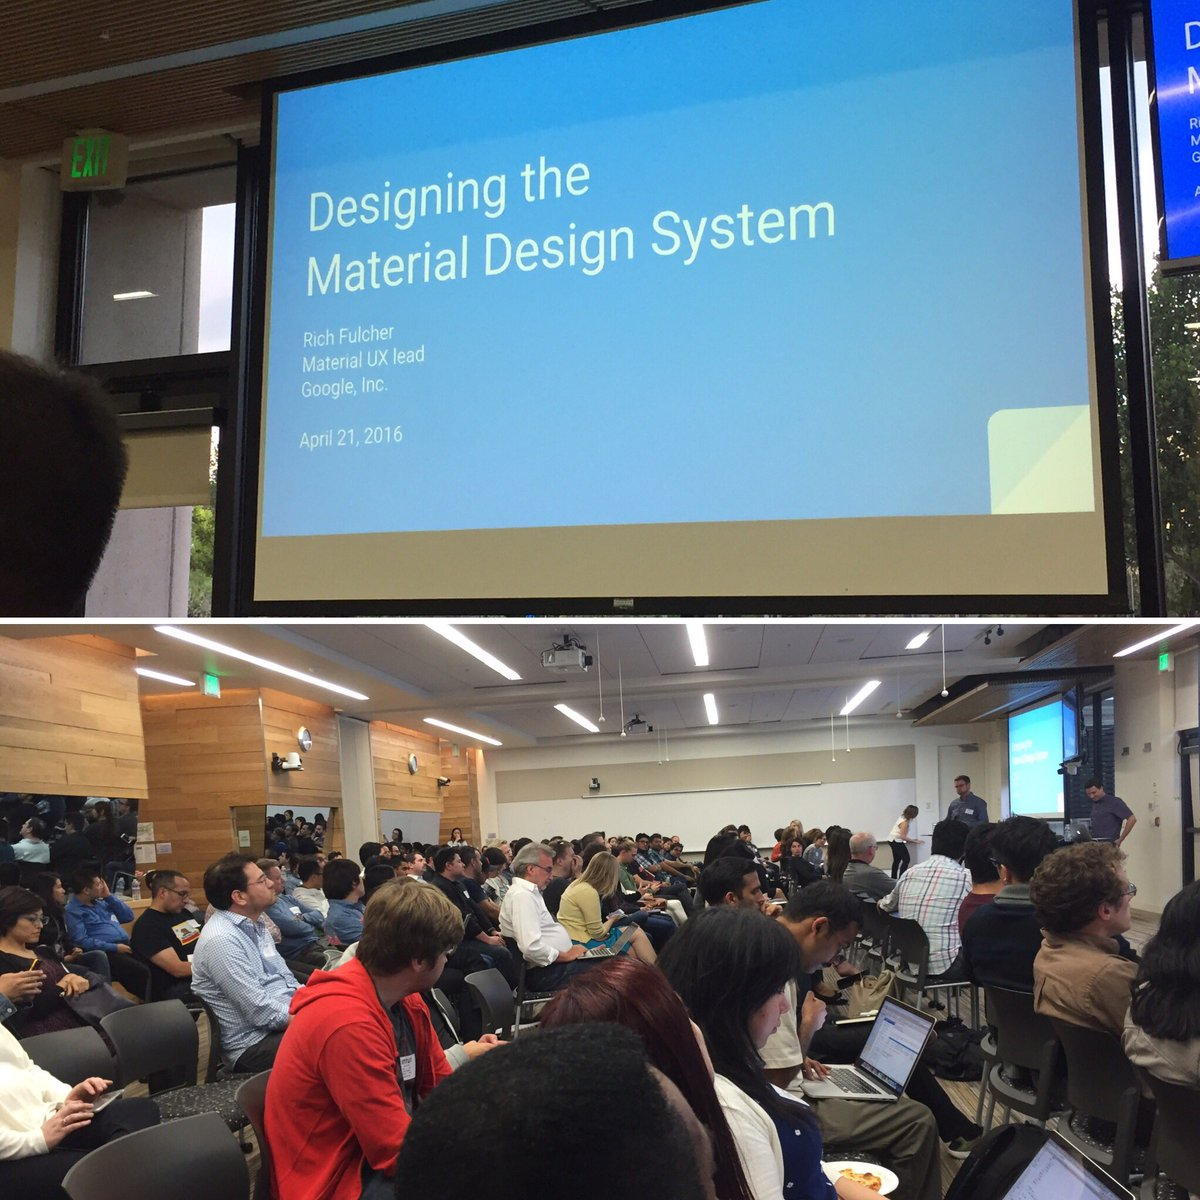 Learning more about design systems from the pros #MaterialDesign #Intuit